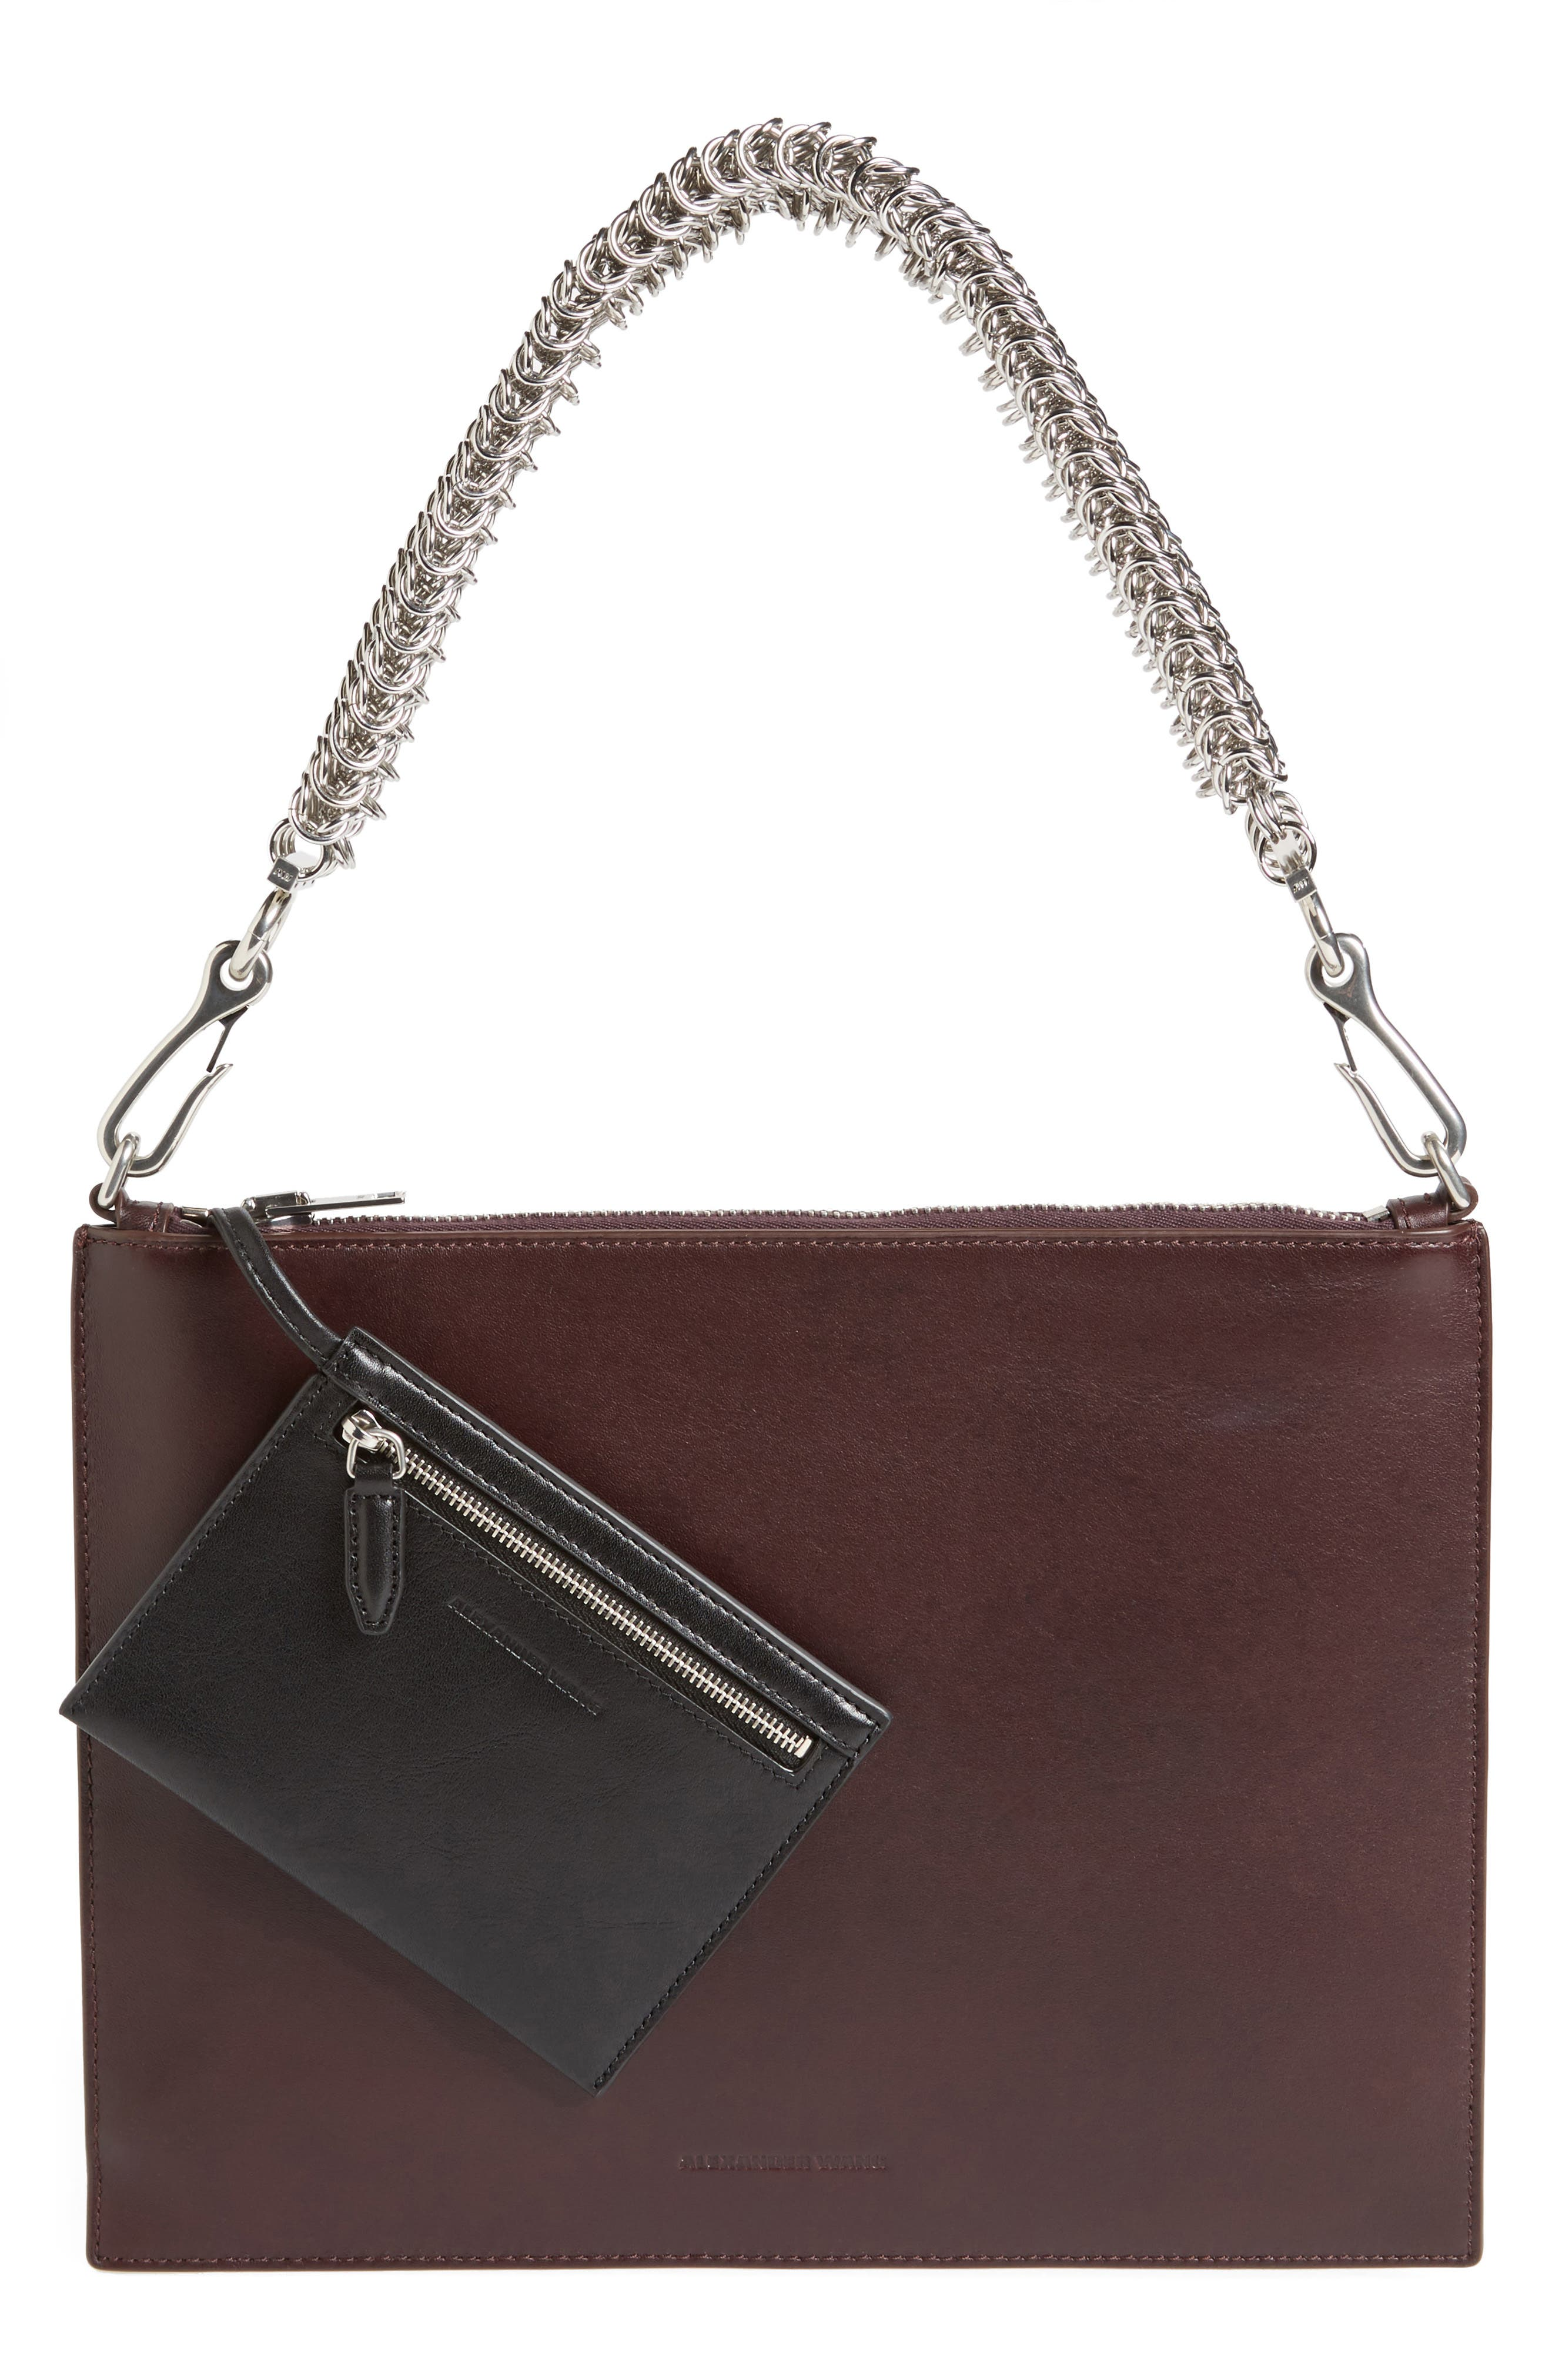 Genesis Box Chain Leather Pouch,                             Main thumbnail 1, color,                             240